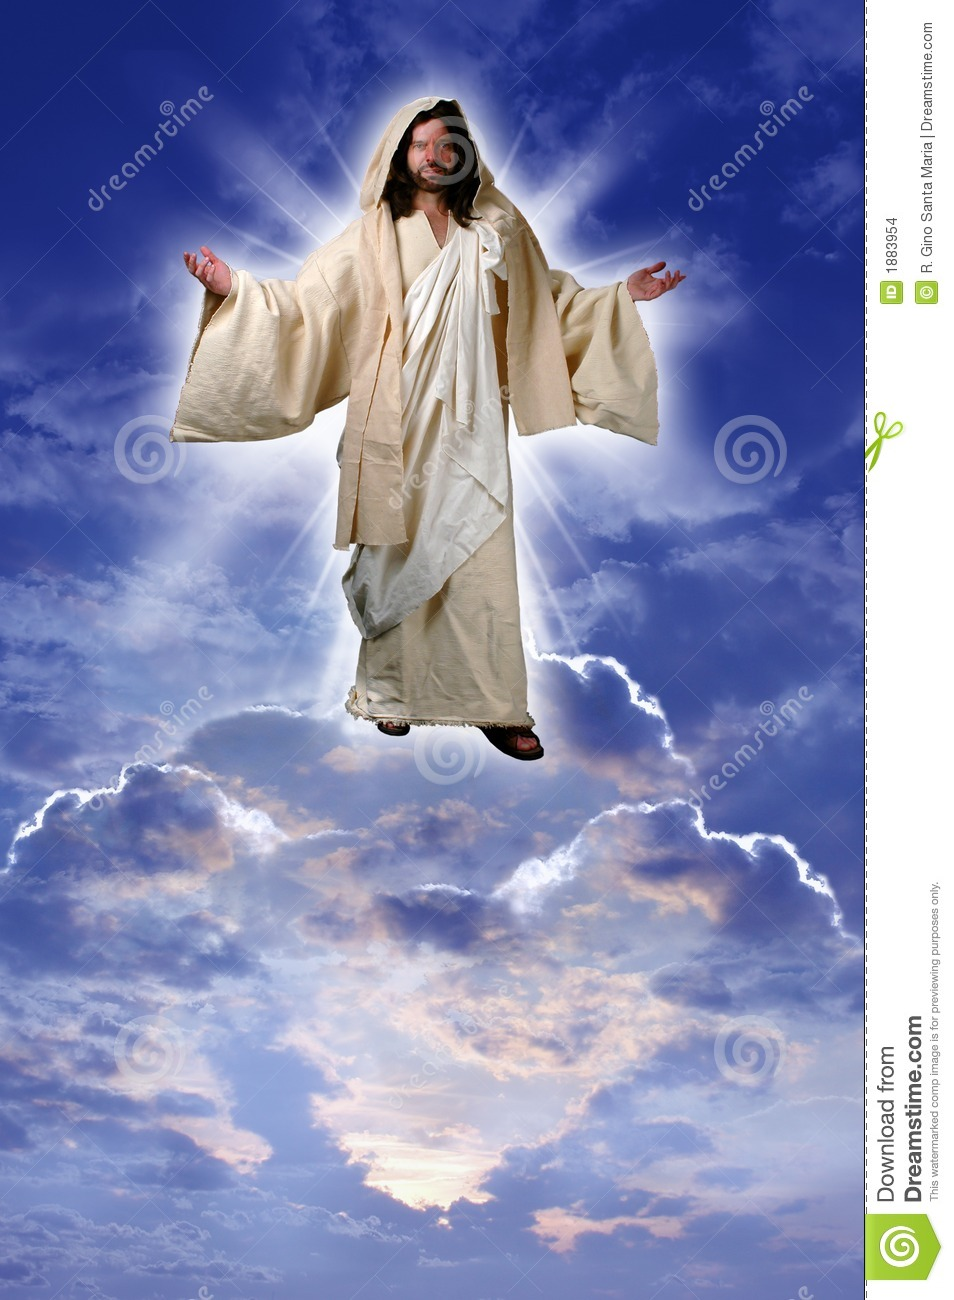 Jesus on a Cloud stock photo. Image of holy, eternal, male - 1883954